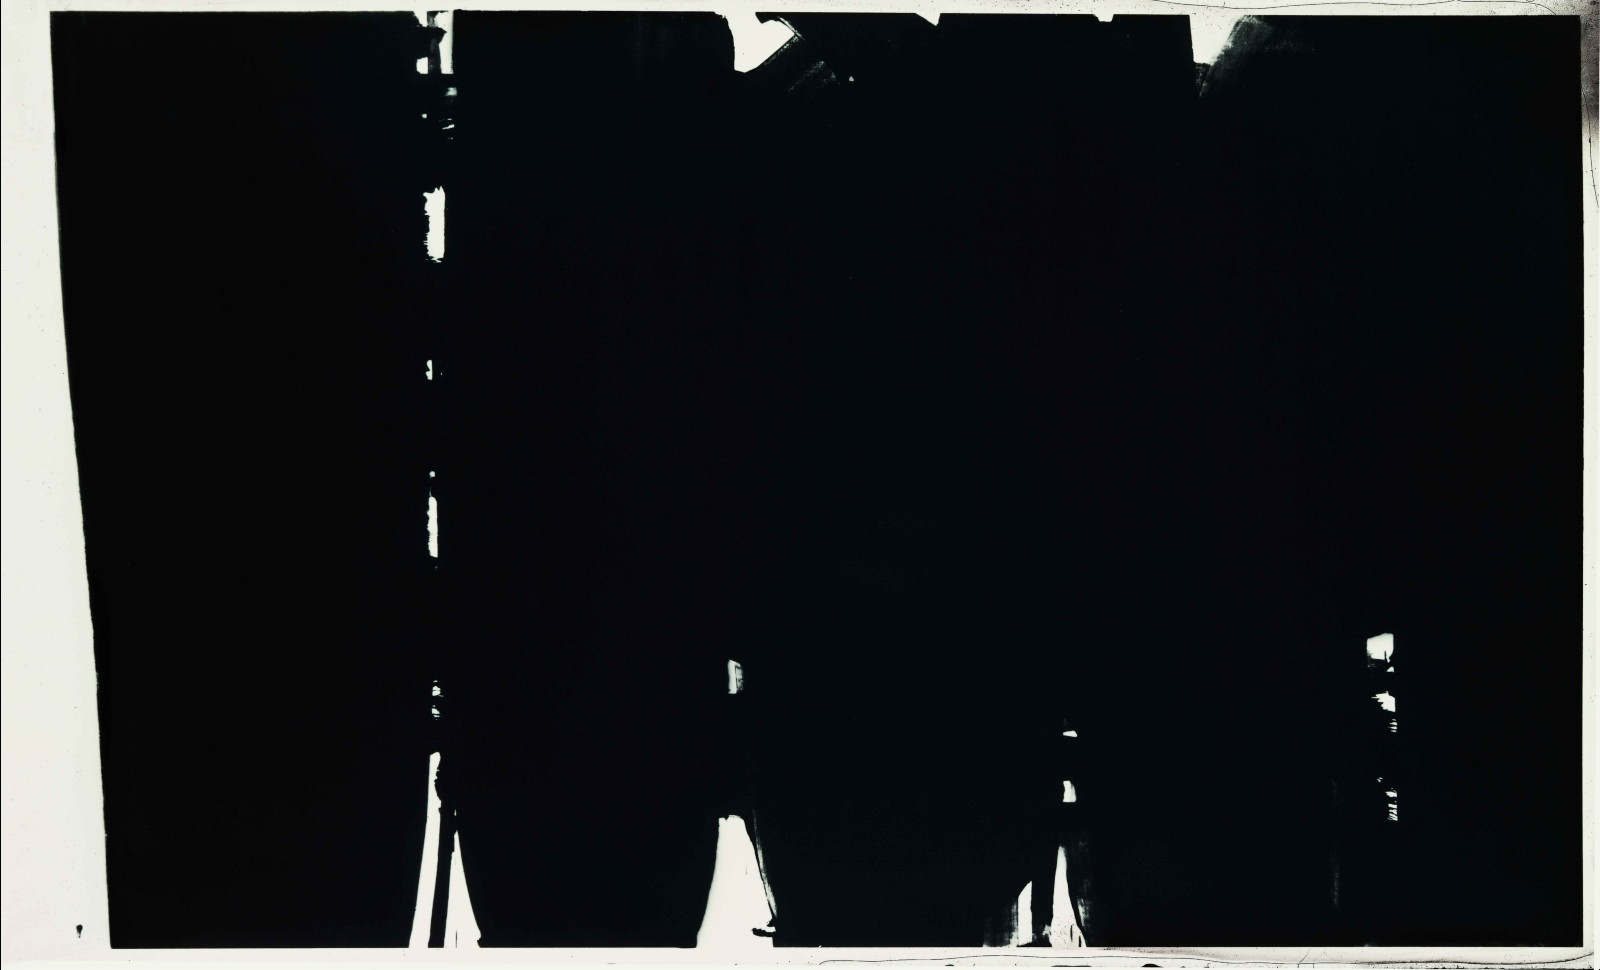 Pierre Soulages, Peinture 220 x 366 cm, 14 mai 1968, Paris, Musée National d'Art moderne - Centre Pompidou © Archives Soulages © ADAGP, Paris 2019